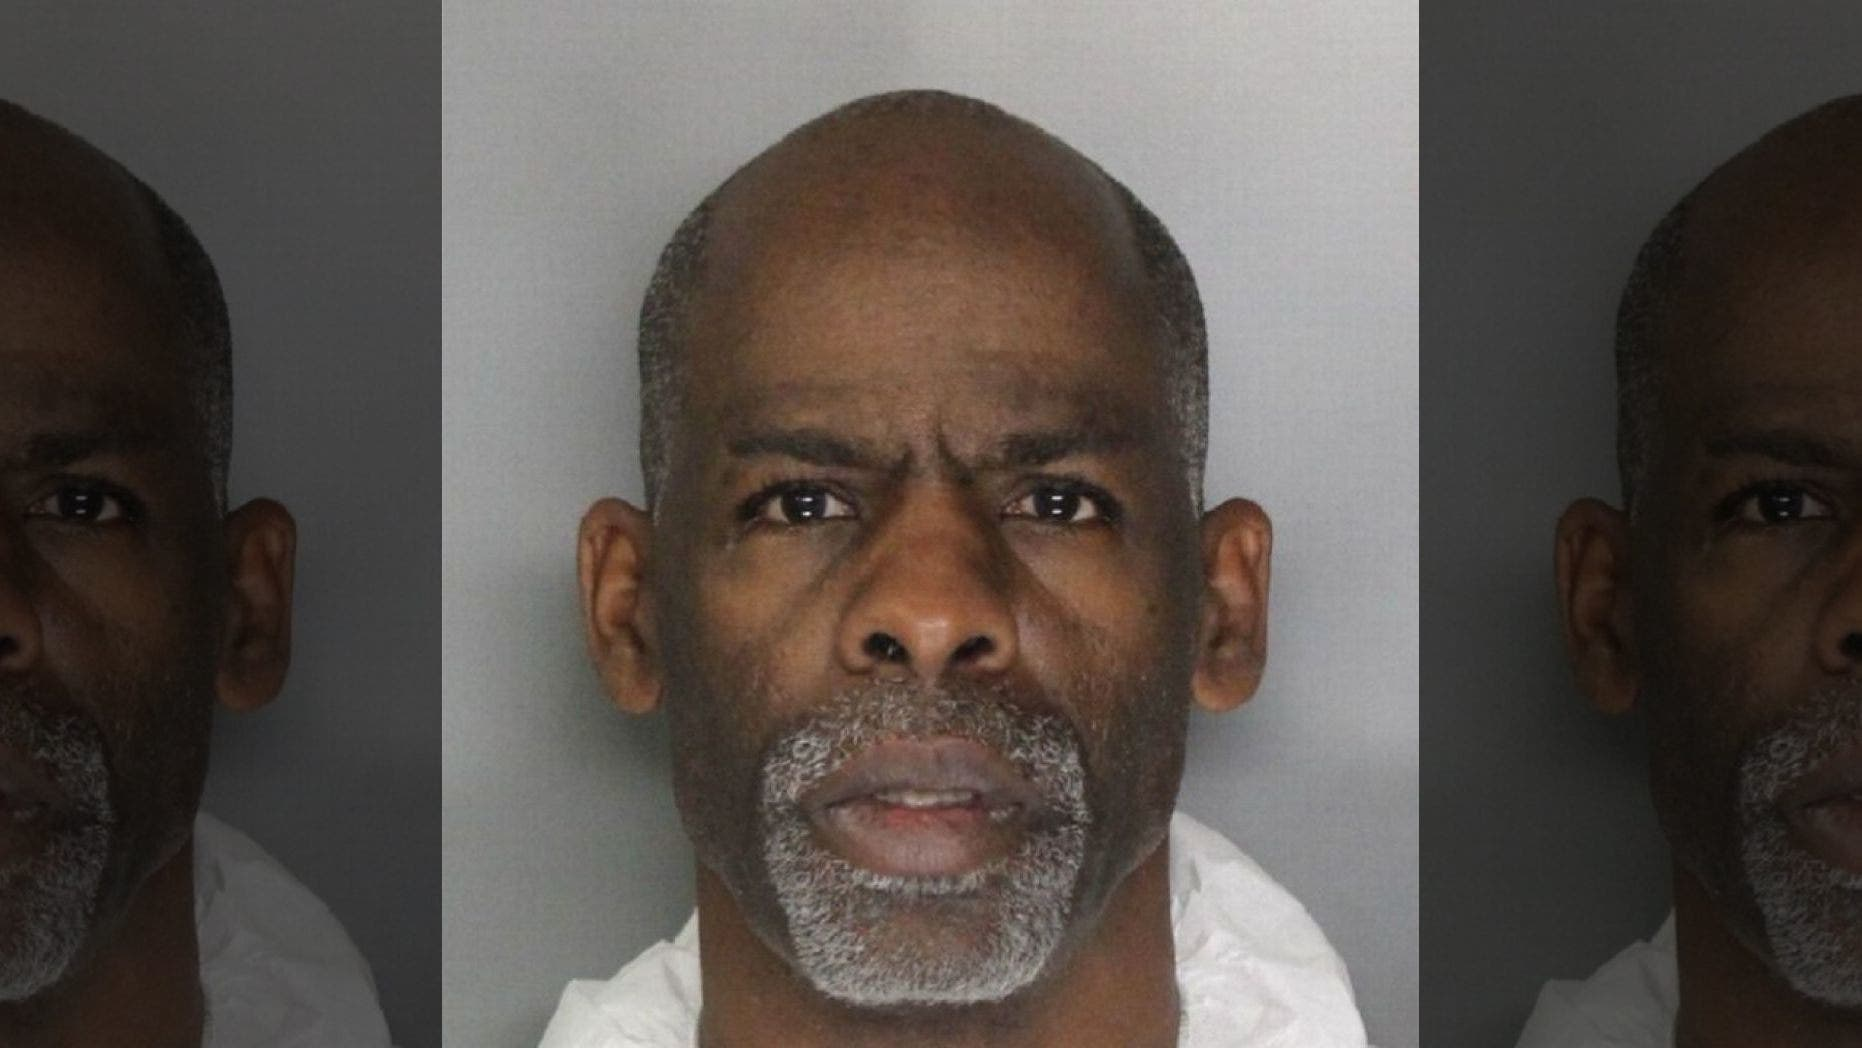 Ronald Seay, 56, is charged in the death of Amber Clark, authorities say.